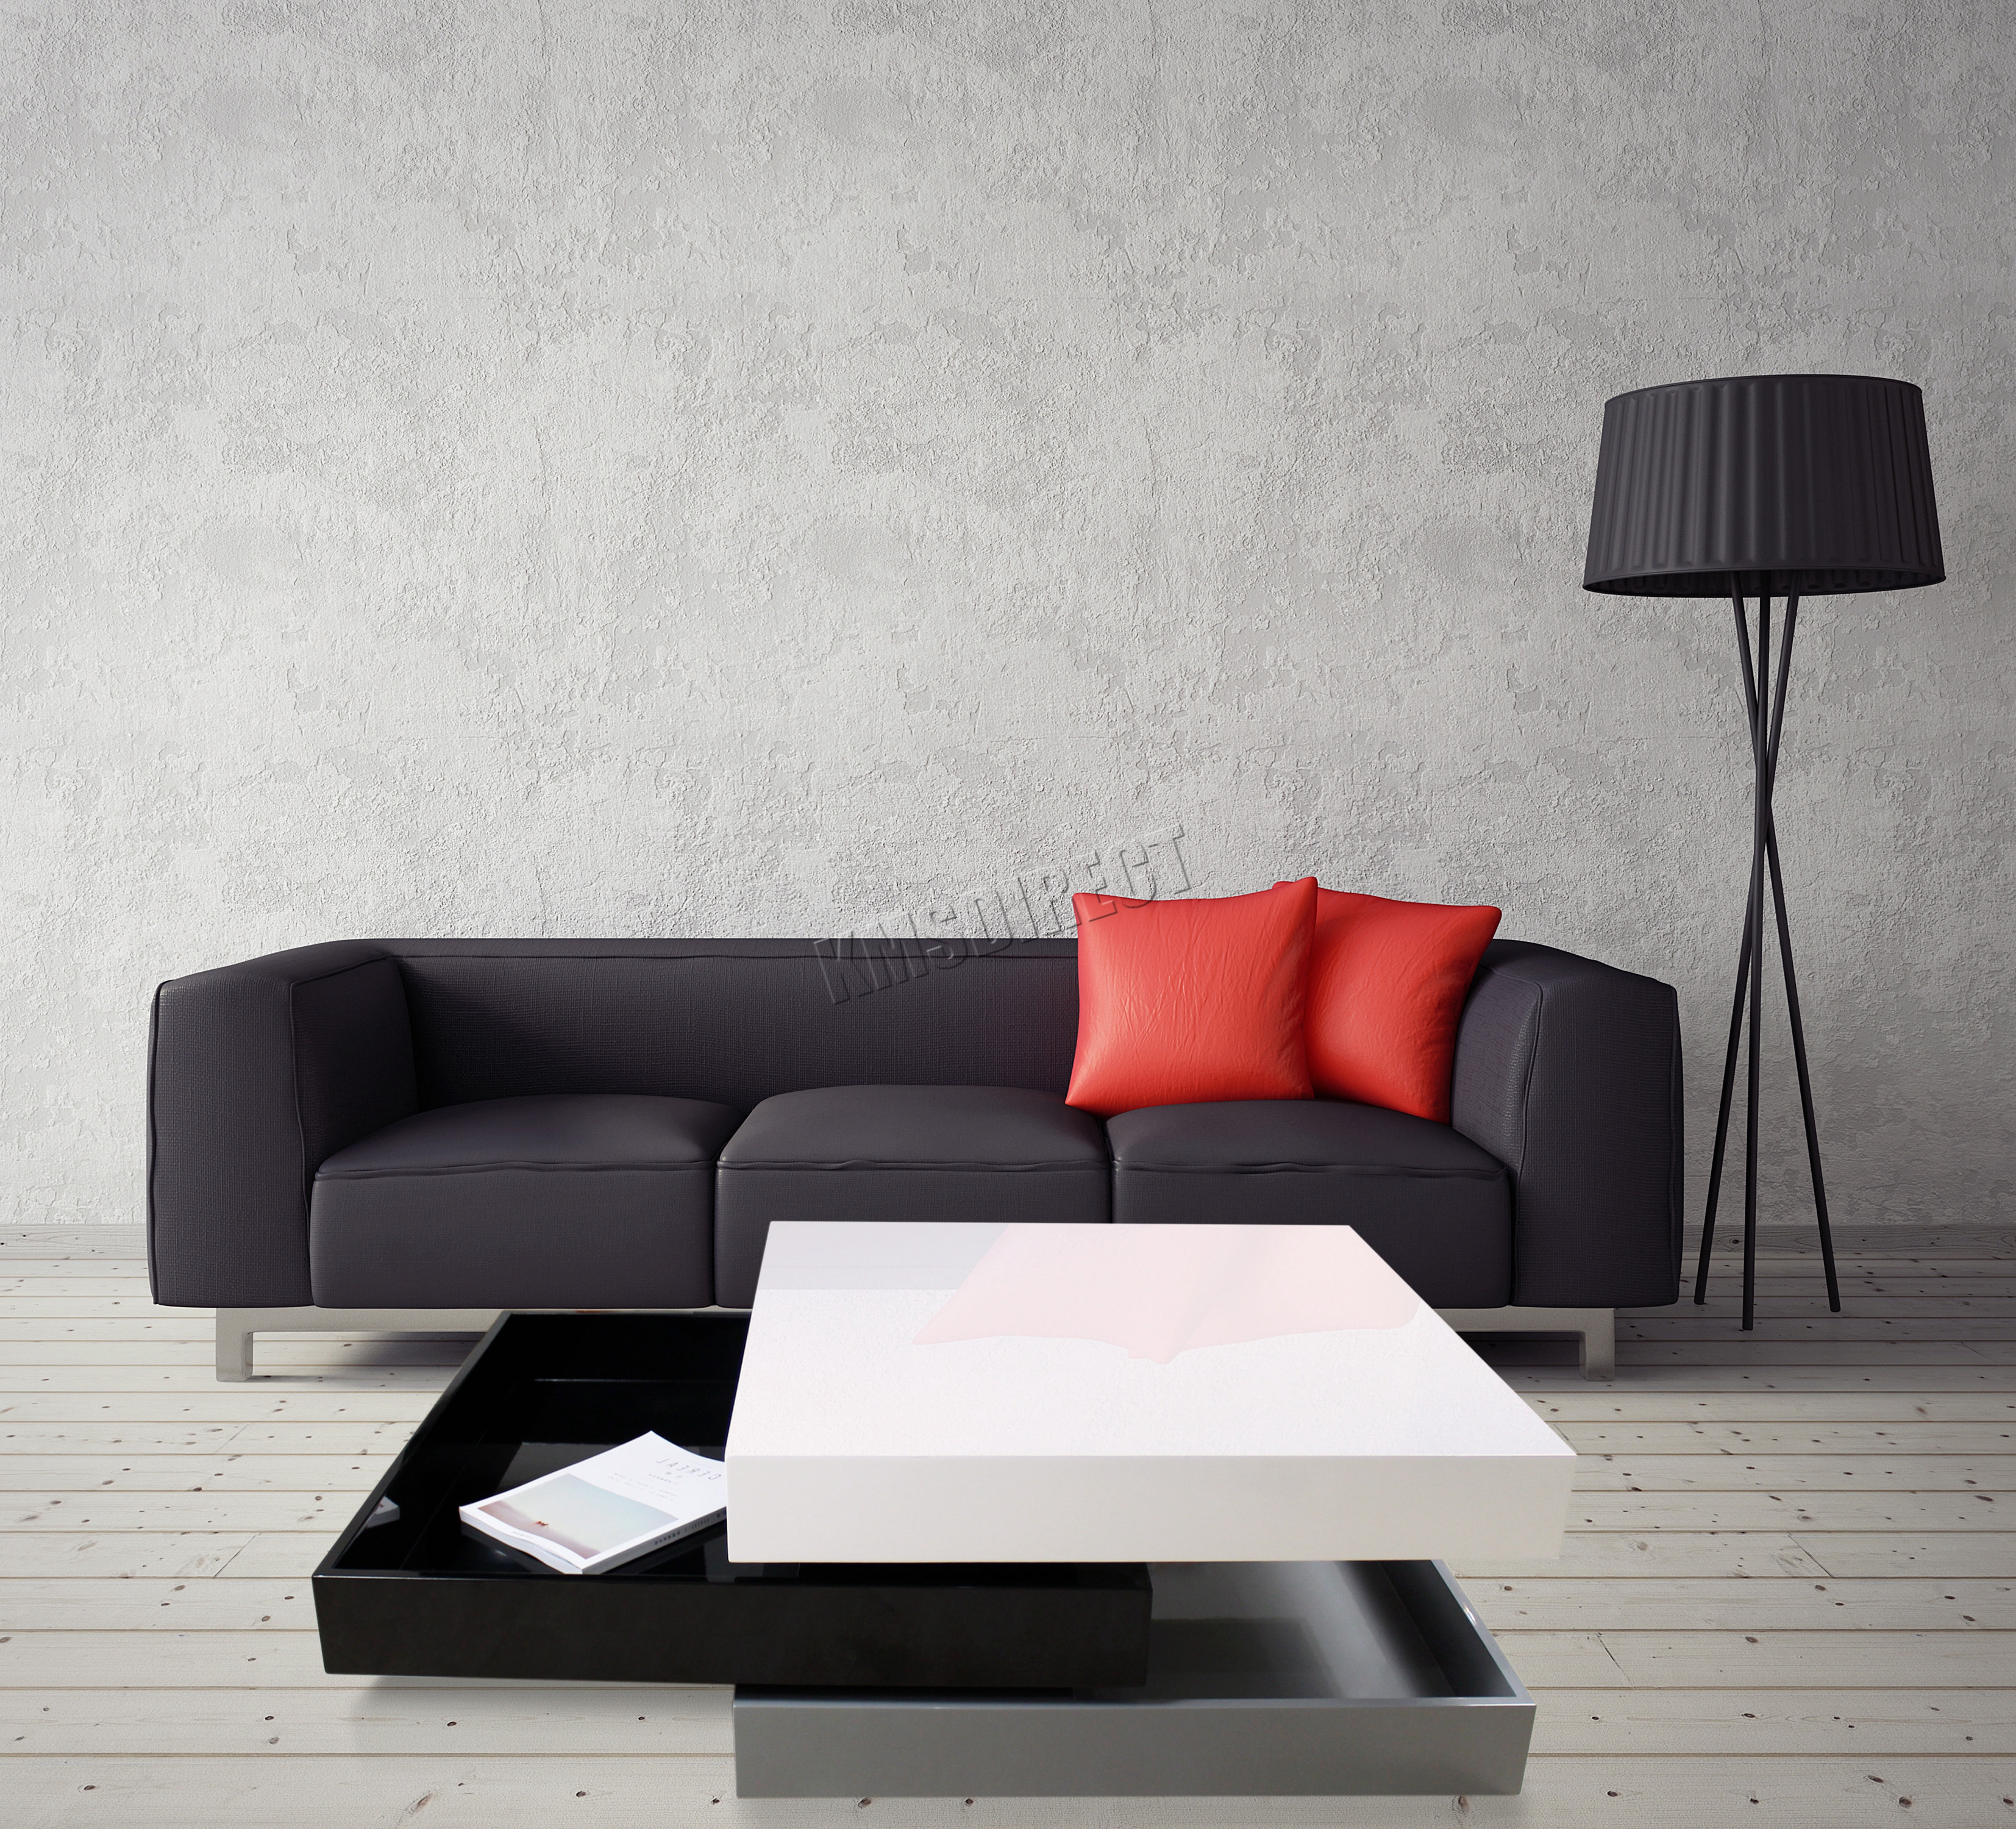 Foxhunter rotating coffee table 3 layers high gloss mdf ct03 black sentinel foxhunter rotating coffee table 3 layers high gloss mdf ct03 black grey white geotapseo Image collections